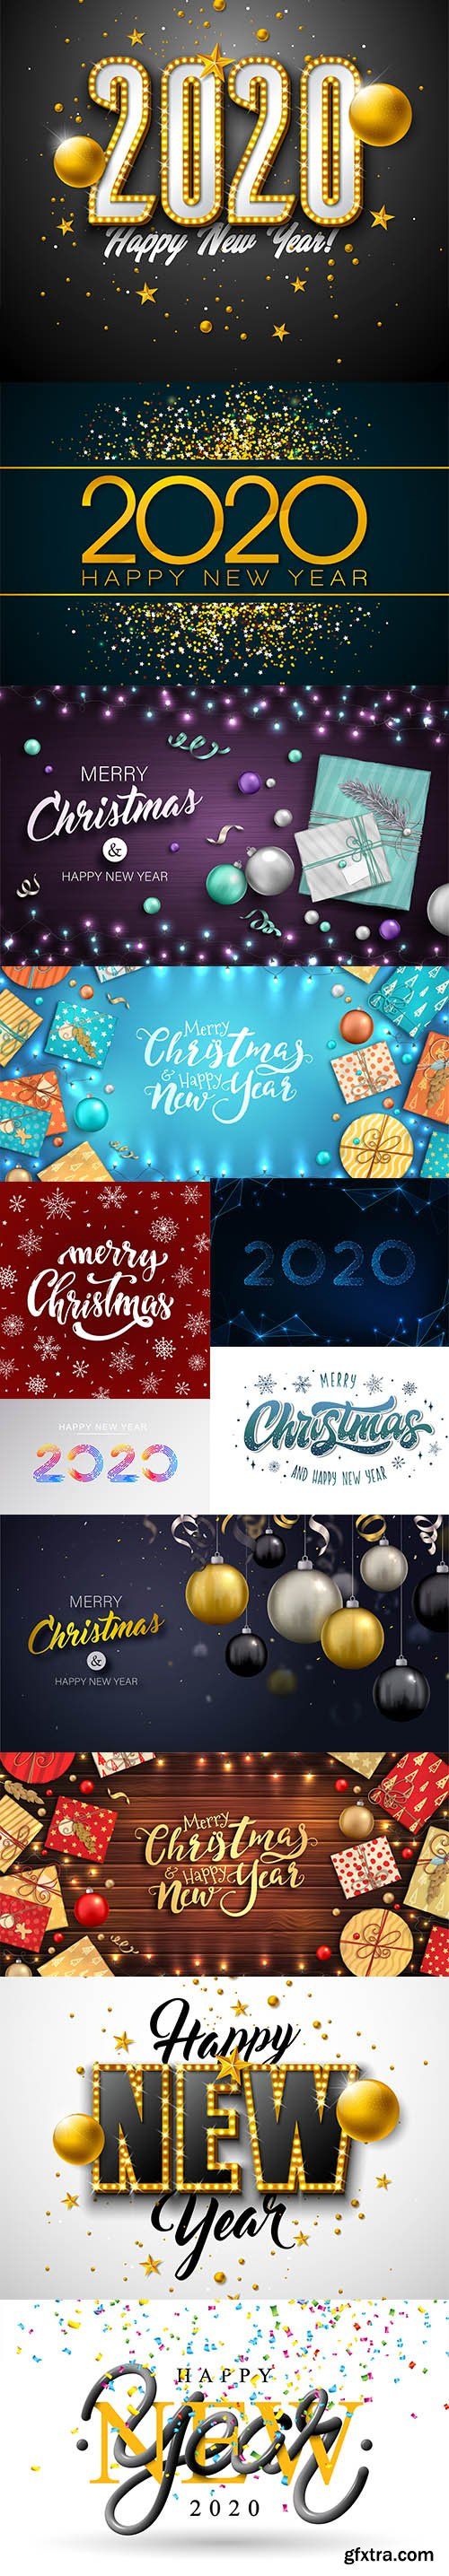 Merry Christmas and New Year 2020 Vector Illustrations Pack